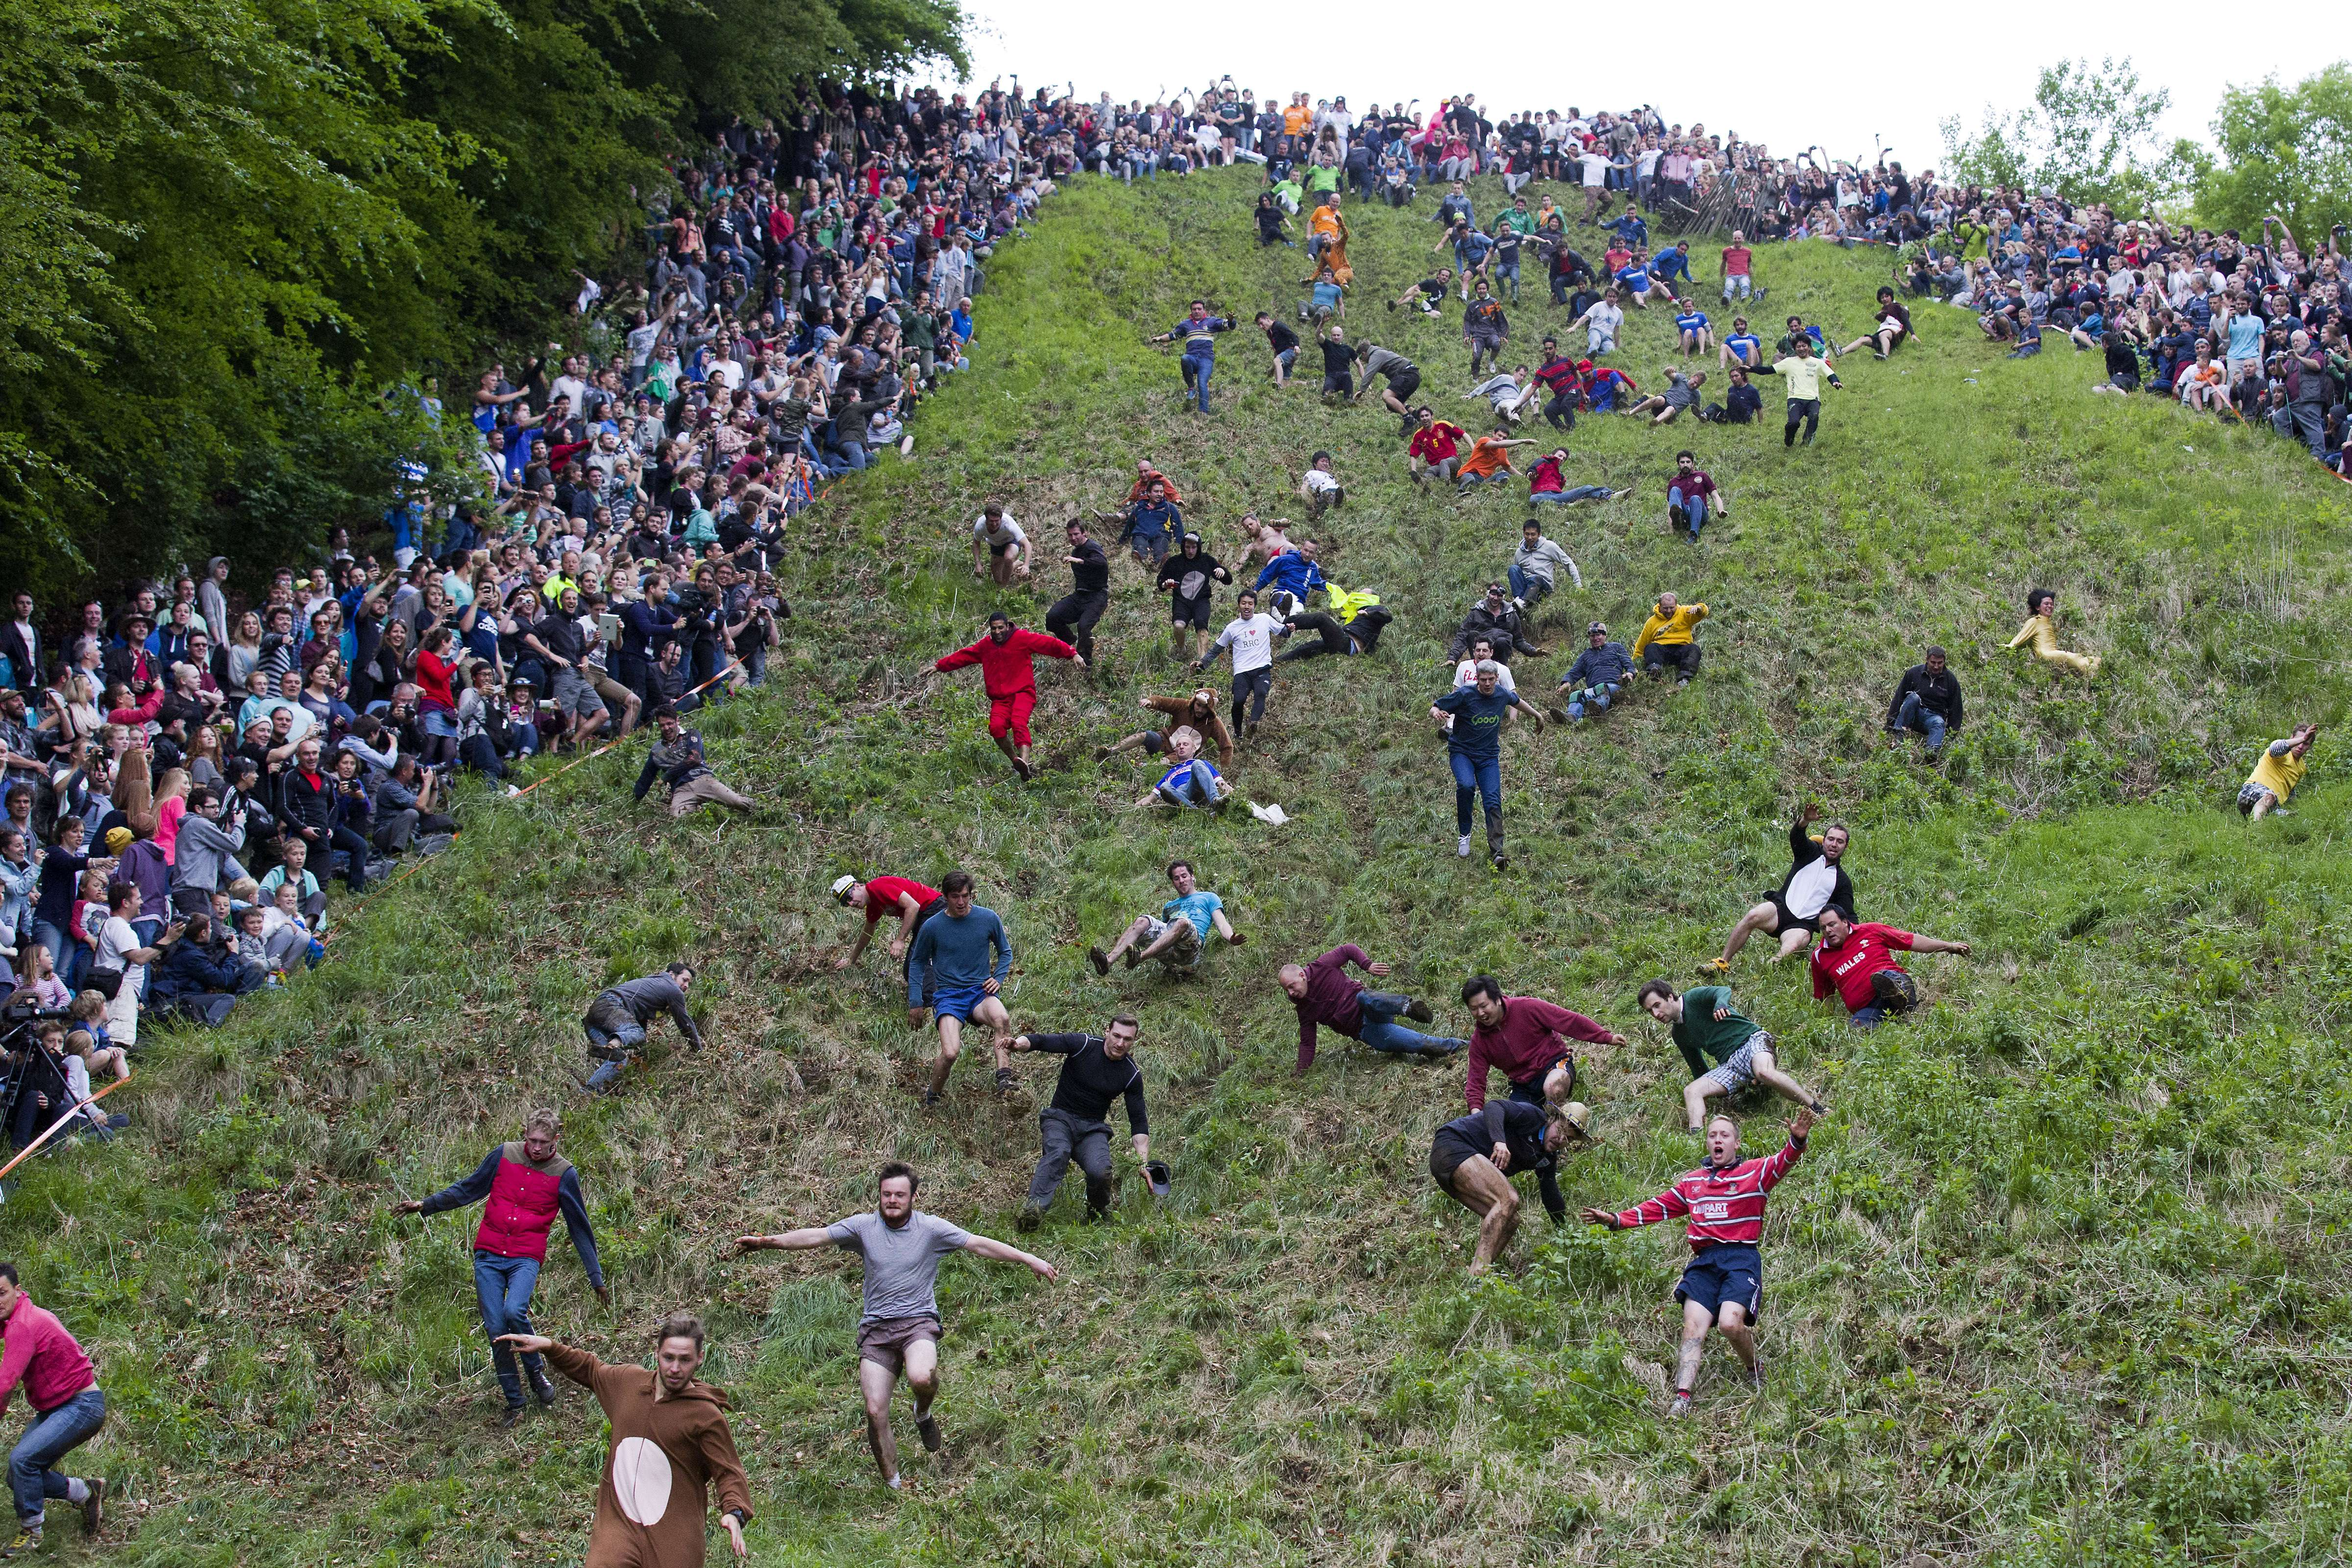 Competitors tumble down Coopers Hill in pursuit of a round Double Gloucester cheese during the annual cheese rolling and wake near the village of Brockworth near Gloucester in western England on May 26, 2014. With a disputed history dating back to at least the 1800s, the annual Cooper's Hill Cheese Rolling involves hordes of fearless competitors chasing an eight pound Double Gloucester cheese down a steep hill. The slope has a gradient in places of 1-in-2 and in others 1-in-1, its surface is very rough and uneven and it is almost impossible to remain on foot for the descent. The winner of the race down the hill wins the cheese.AFP PHOTO / JUSTIN TALLISJUSTIN TALLIS/AFP/Getty Images ORG XMIT: 1095